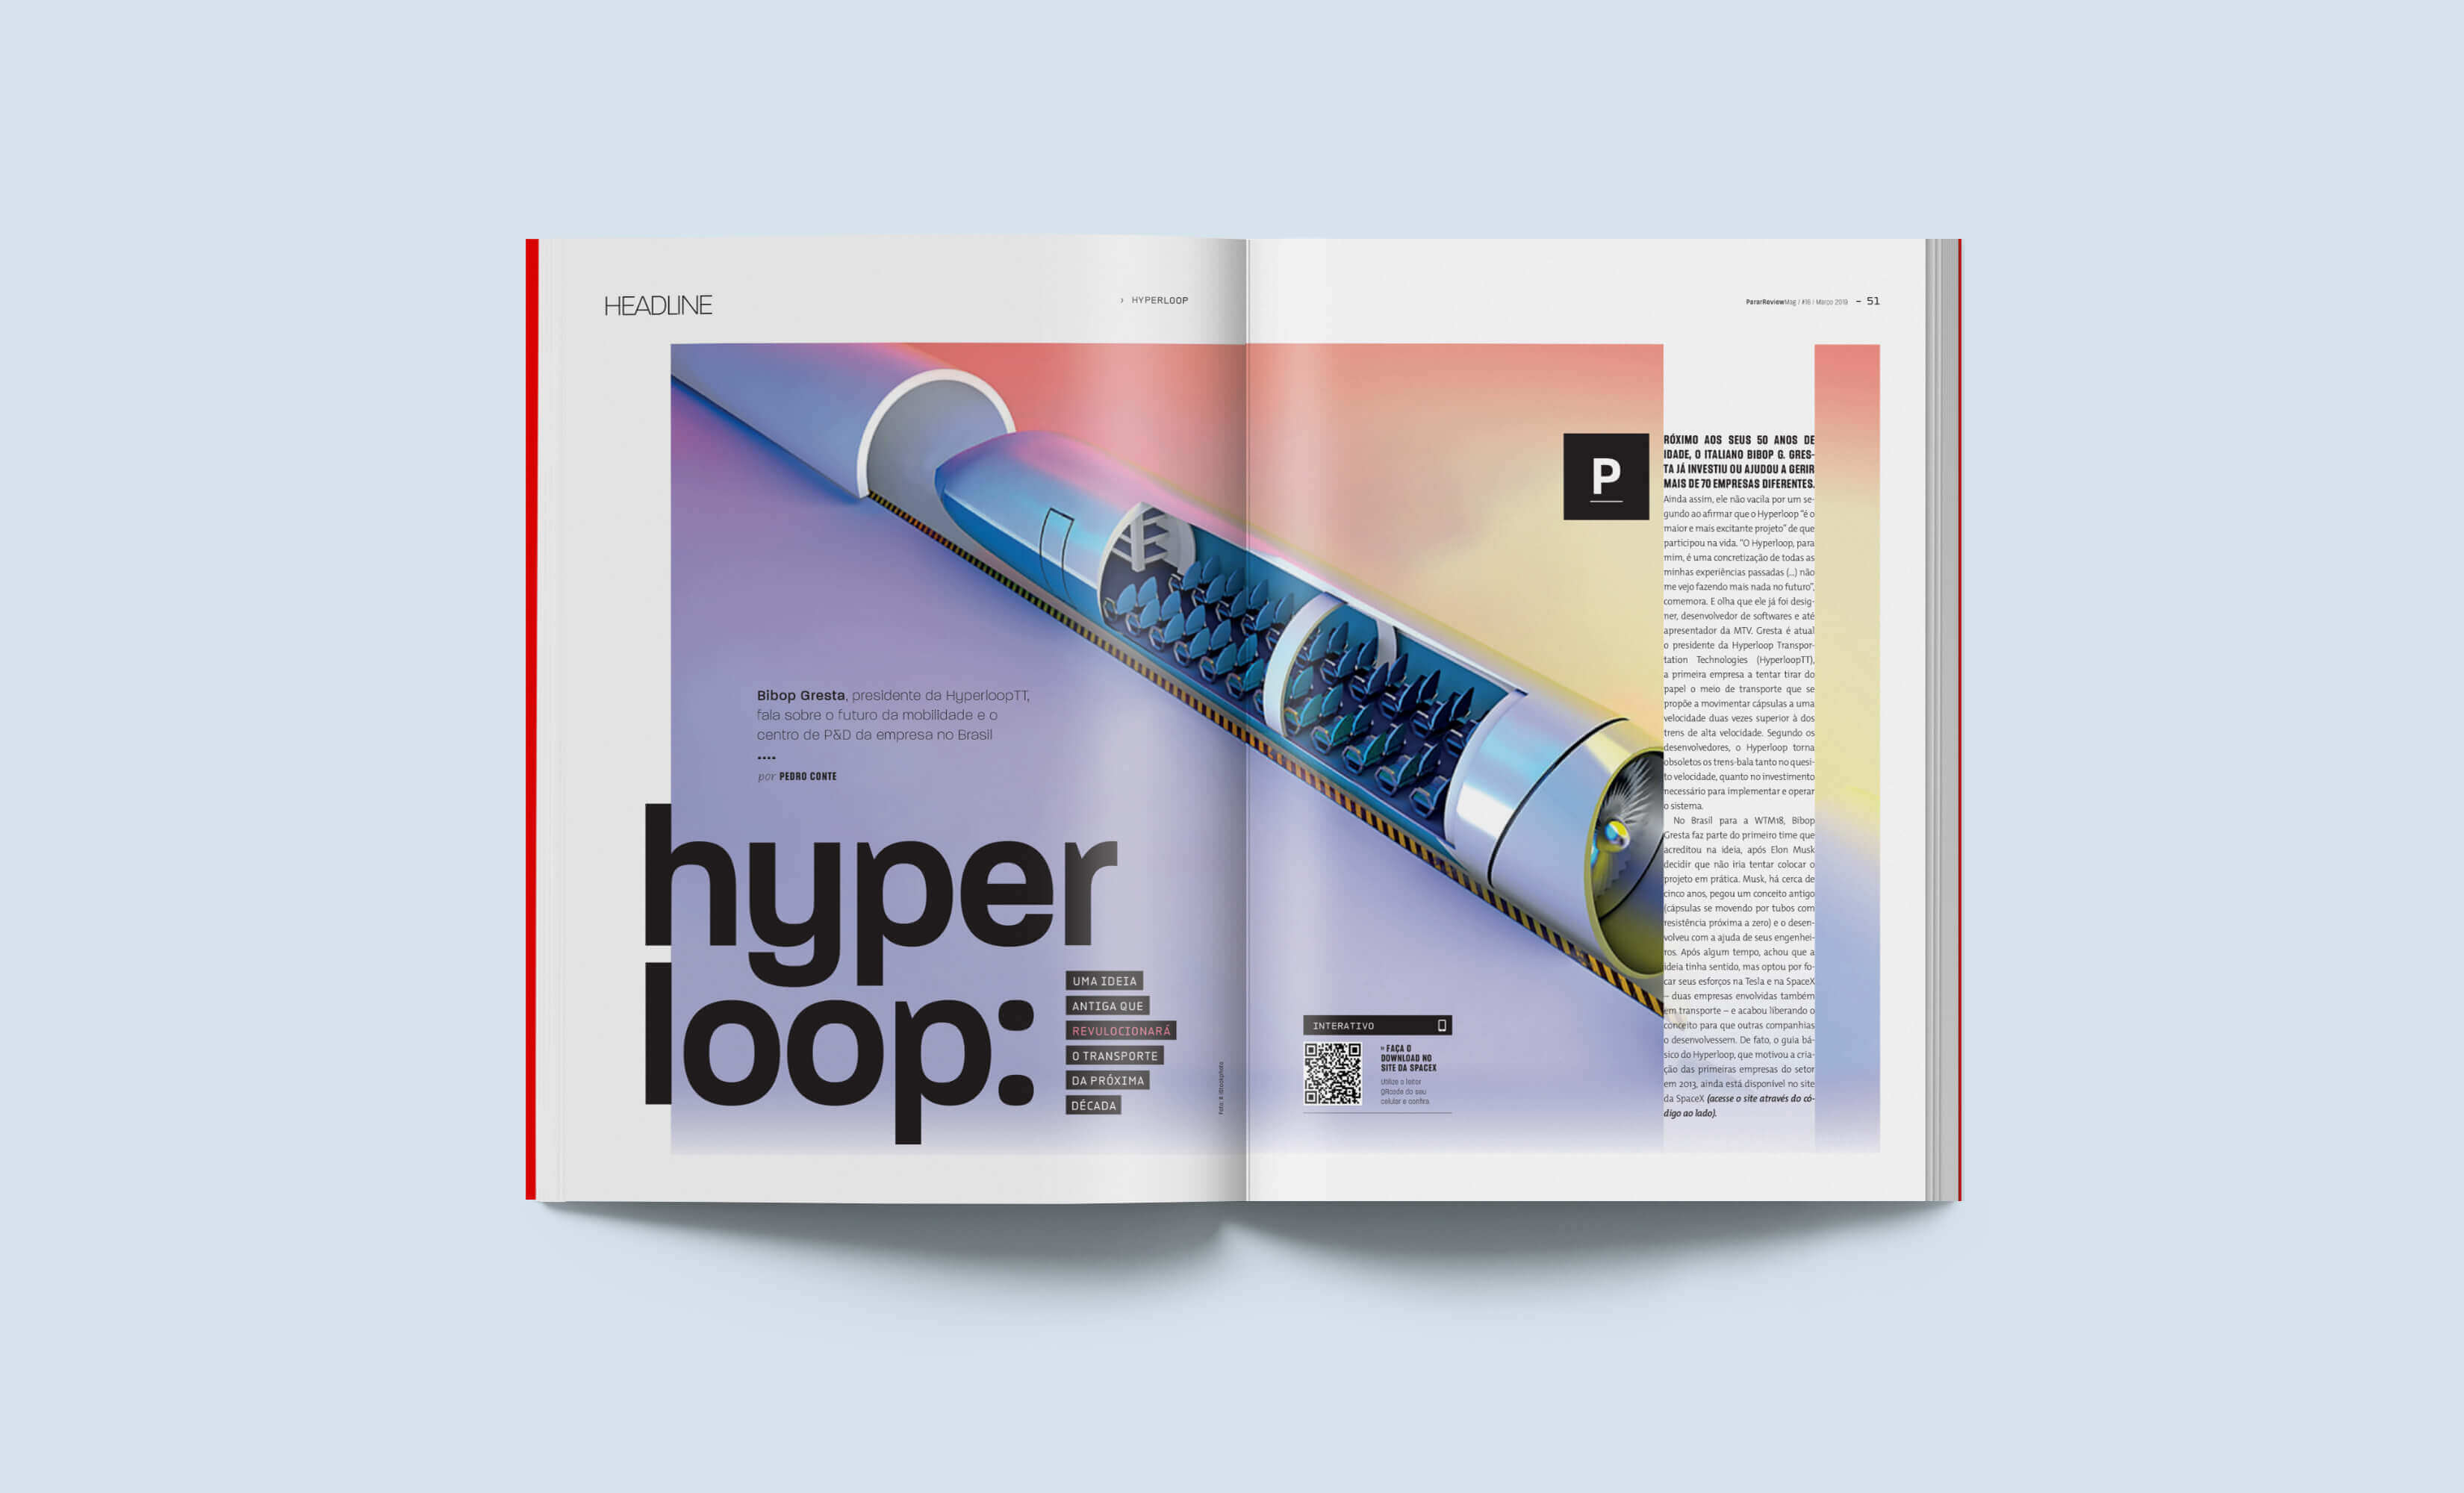 parar-magazine-hyperloop